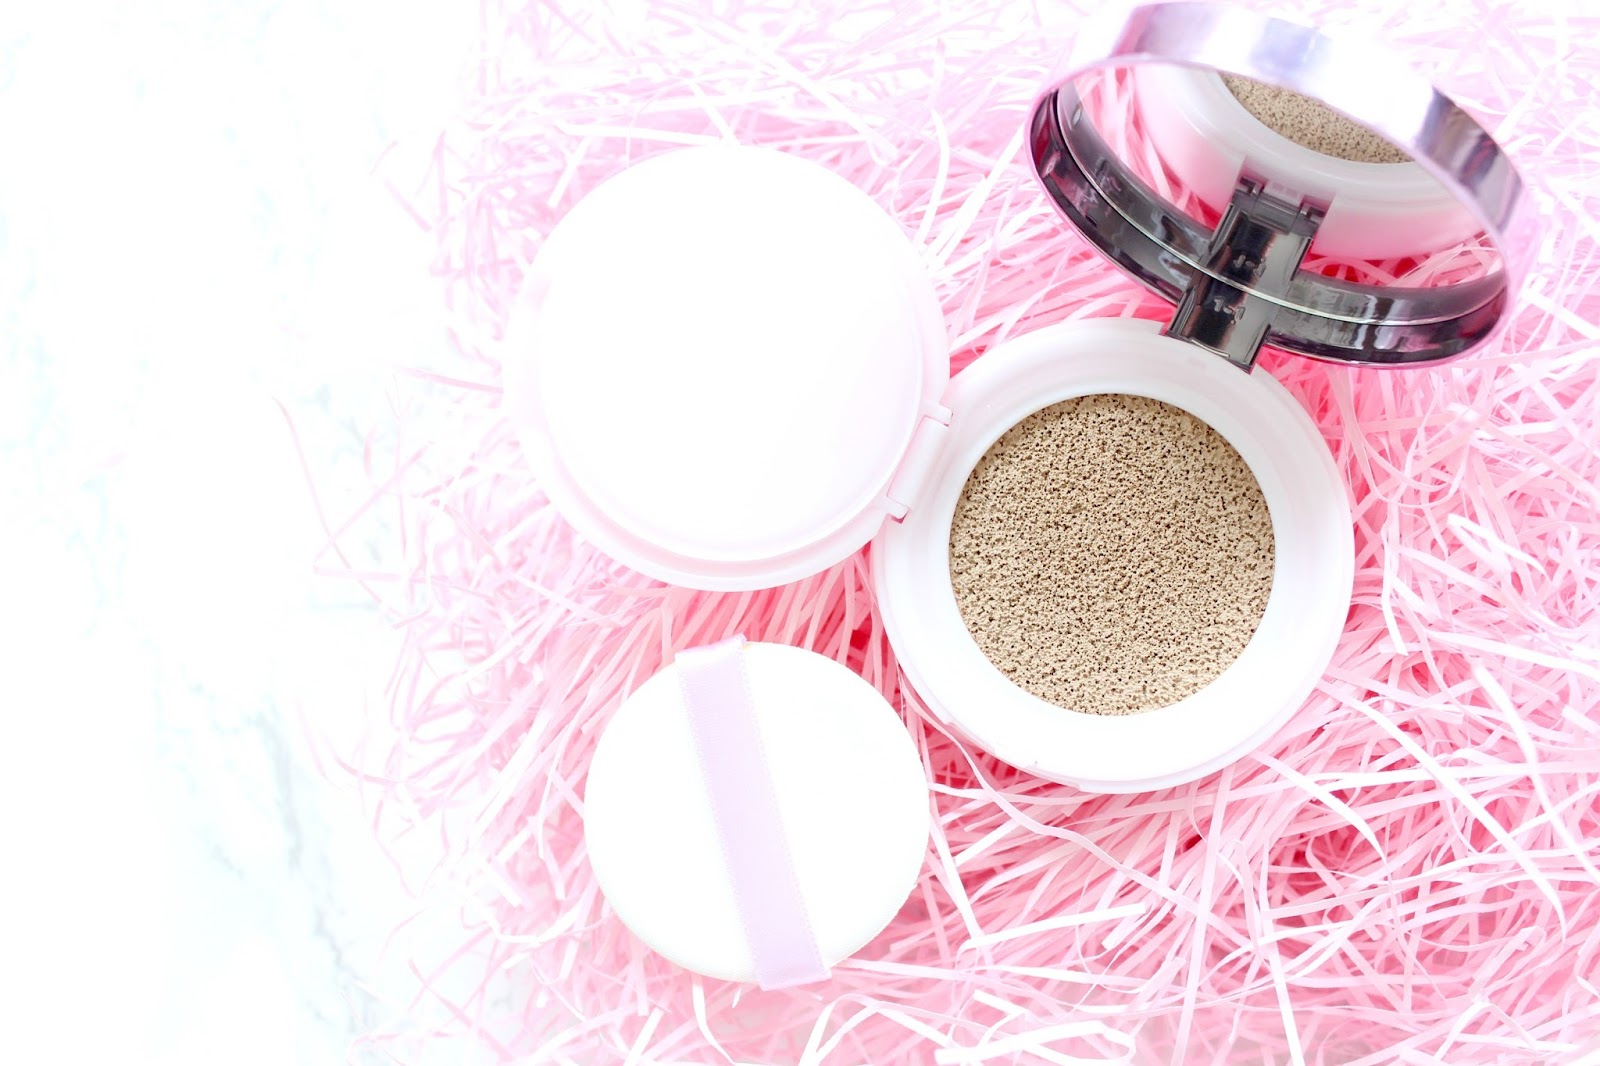 A picture of the new L'Oreal Nude Magique Cushion Foundation